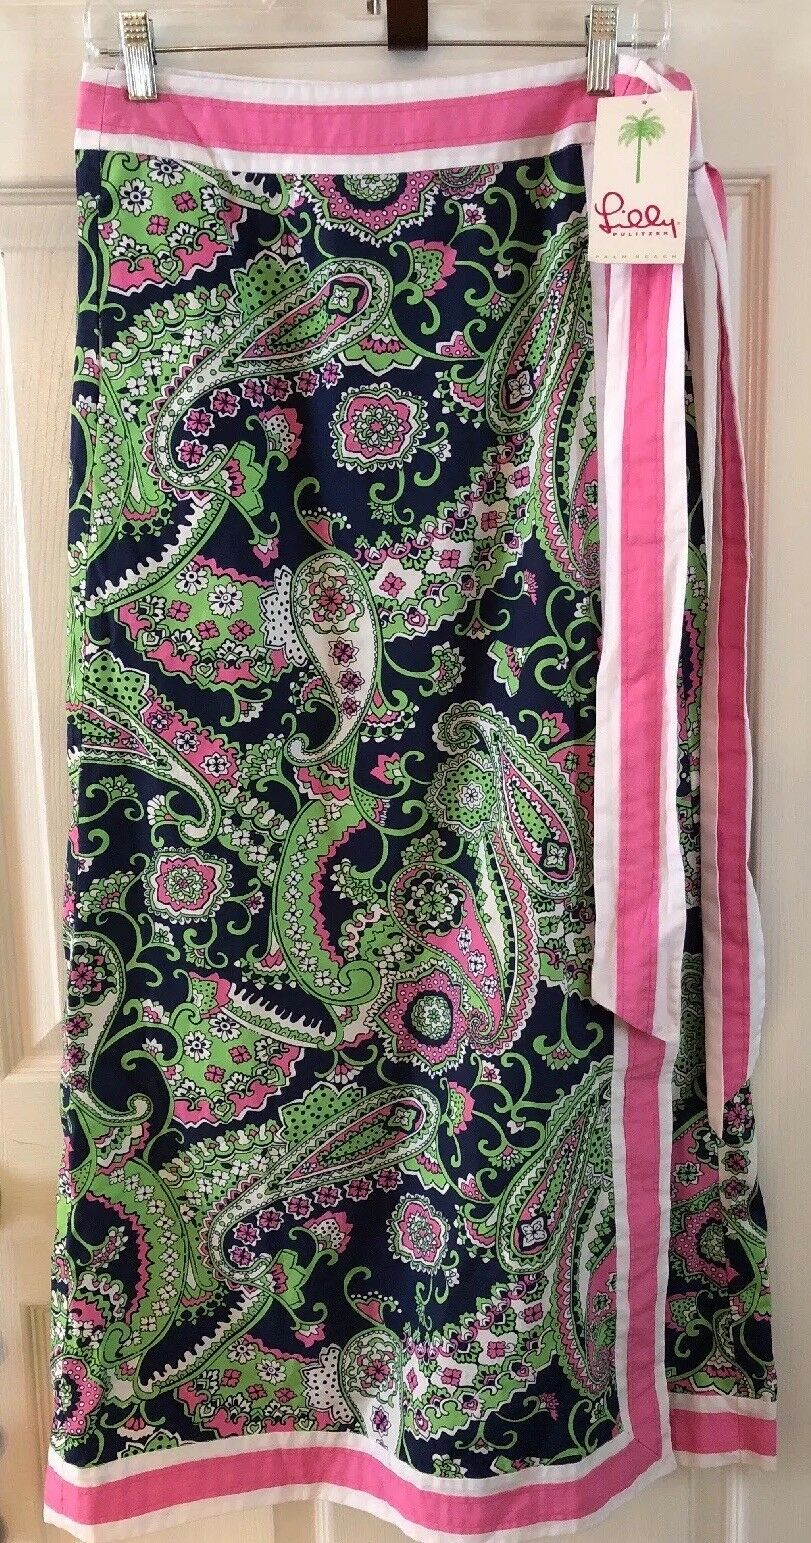 NWT Lilly Pulitzer Celine Long Wrap Skirt Navy Pink Green Paisley Small MRP